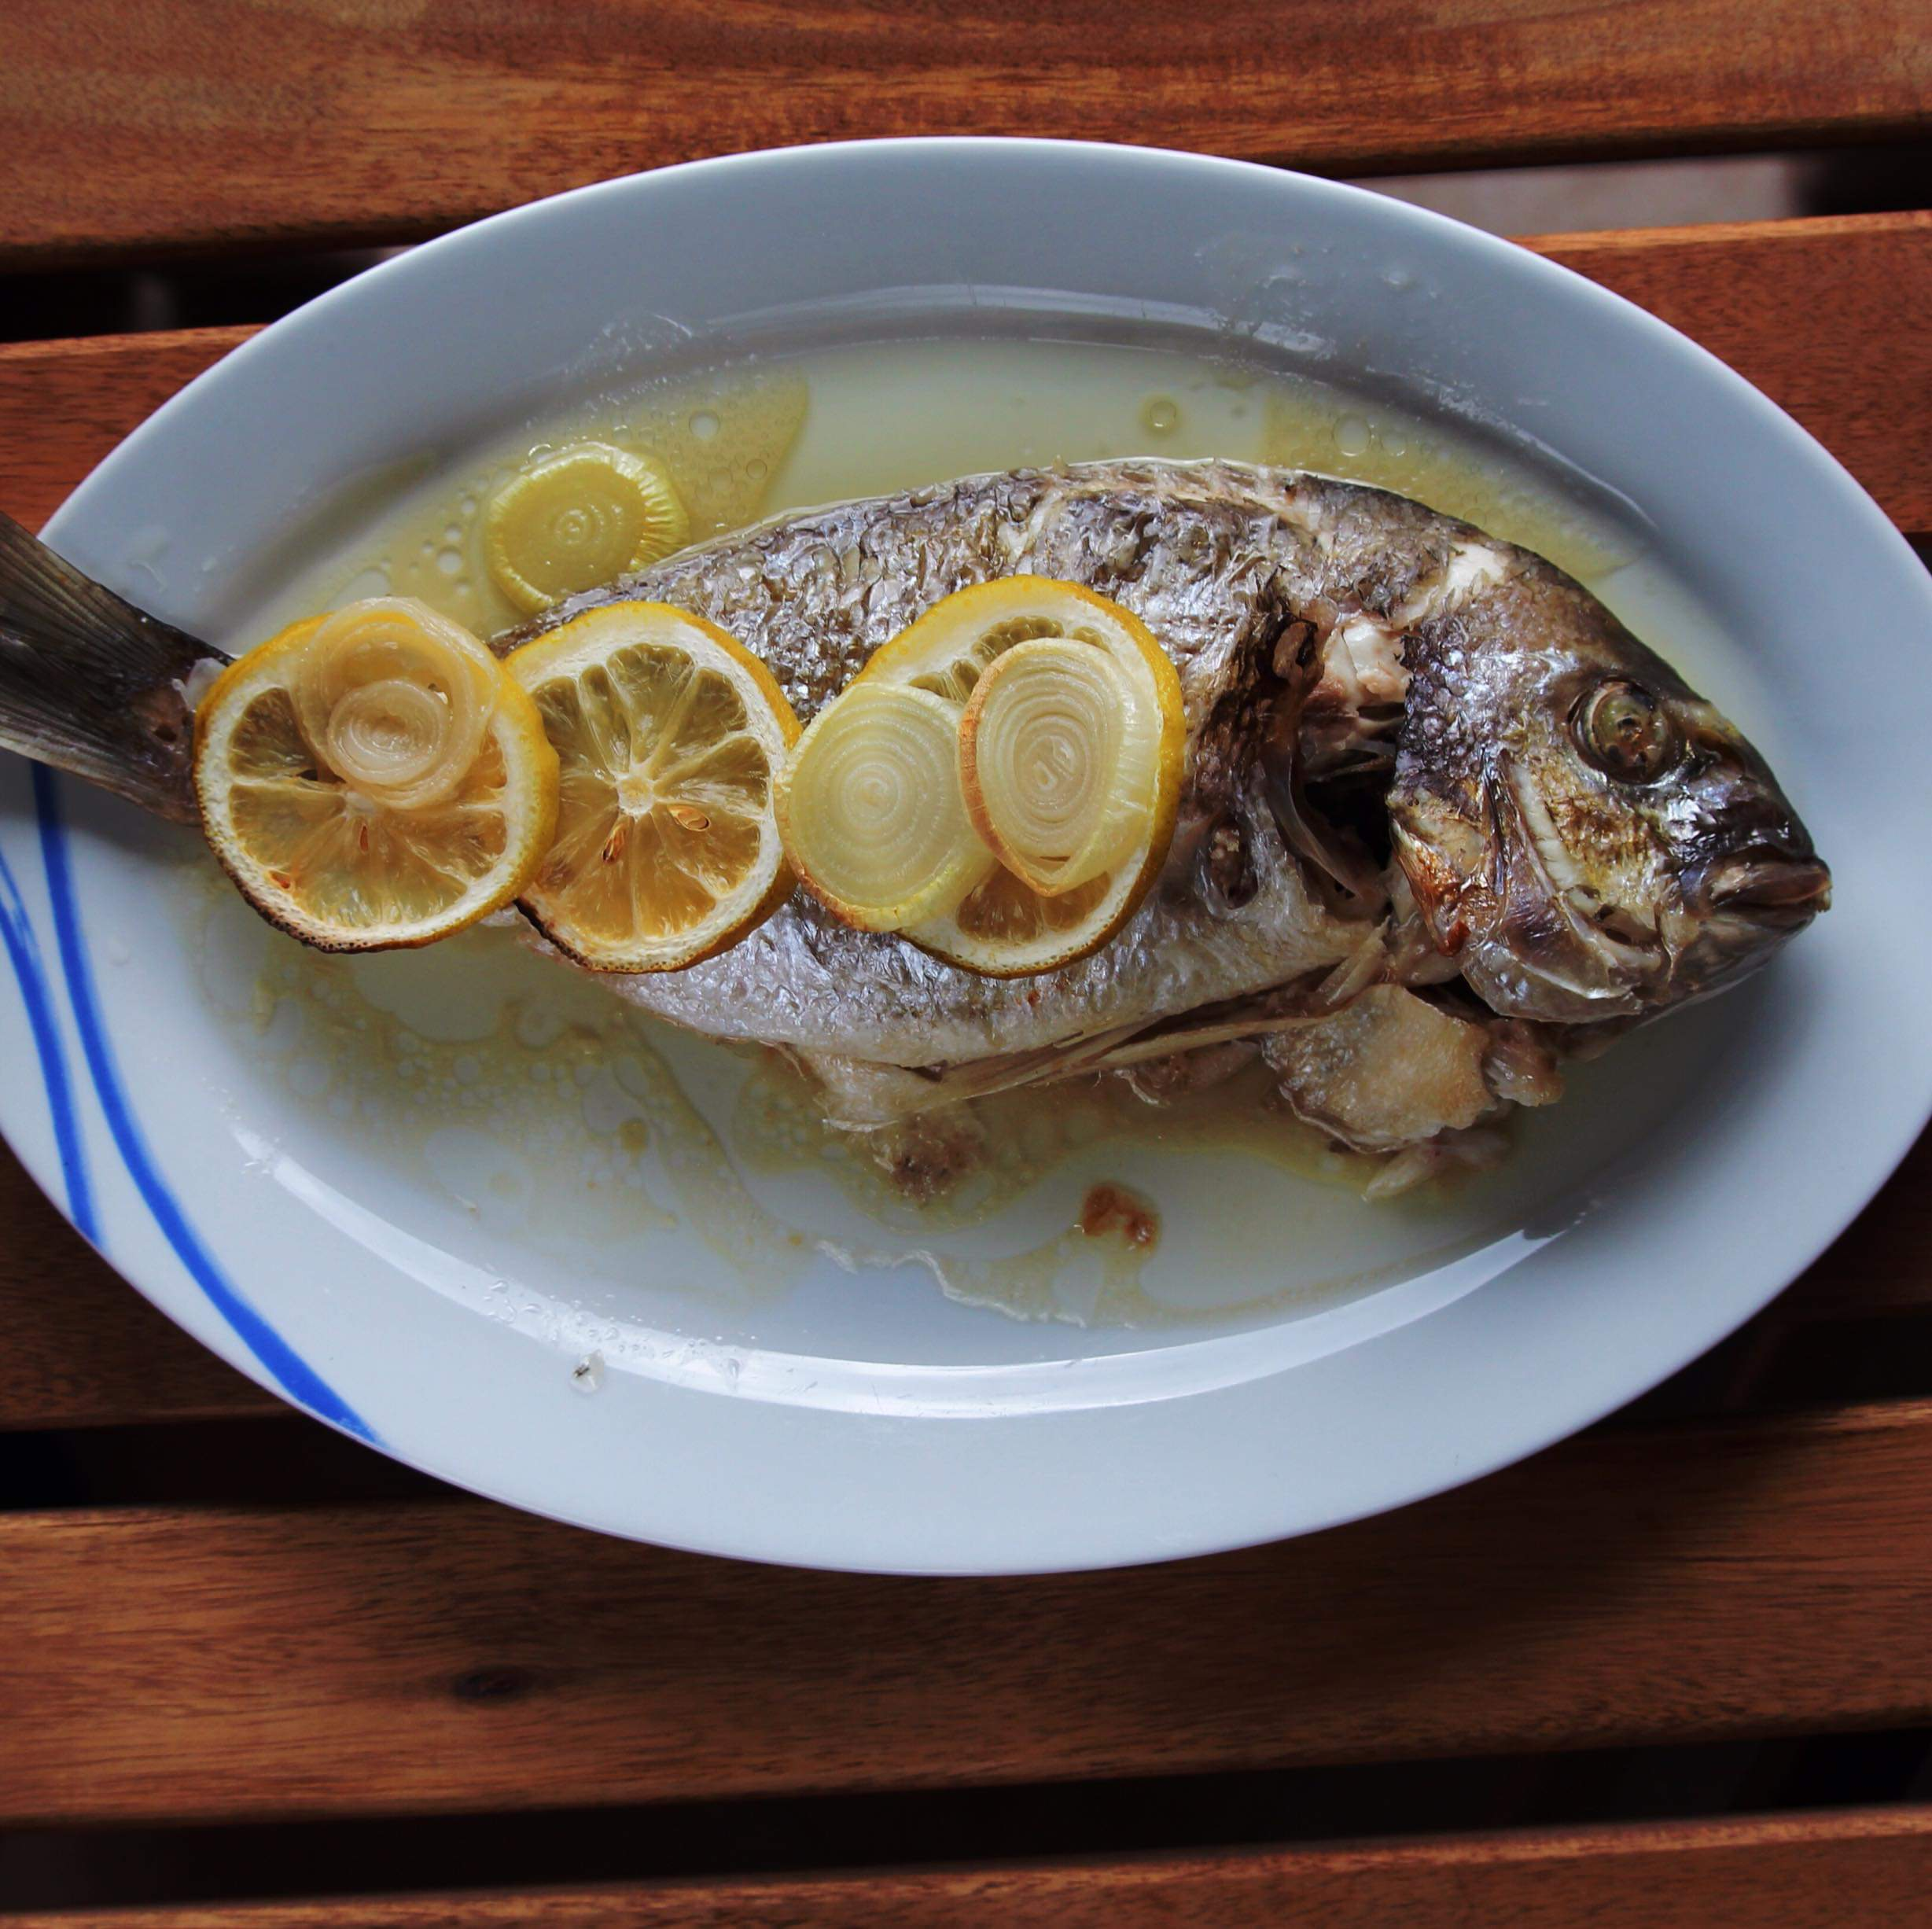 """""""Branzino is a very mild-tasting and versatile fish that can be found wild-caught in many stores,"""" says Christala. """"This simple, healthy, and delicious Mediterranean fish, also known as 'Greek Sea Bass,' should be cooked whole. The cavity of the fish can be stuffed with lemon and other ingredients for added flavor. The oregano and lemon make it truly Greek cuisine that many will enjoy. Enjoy!"""""""